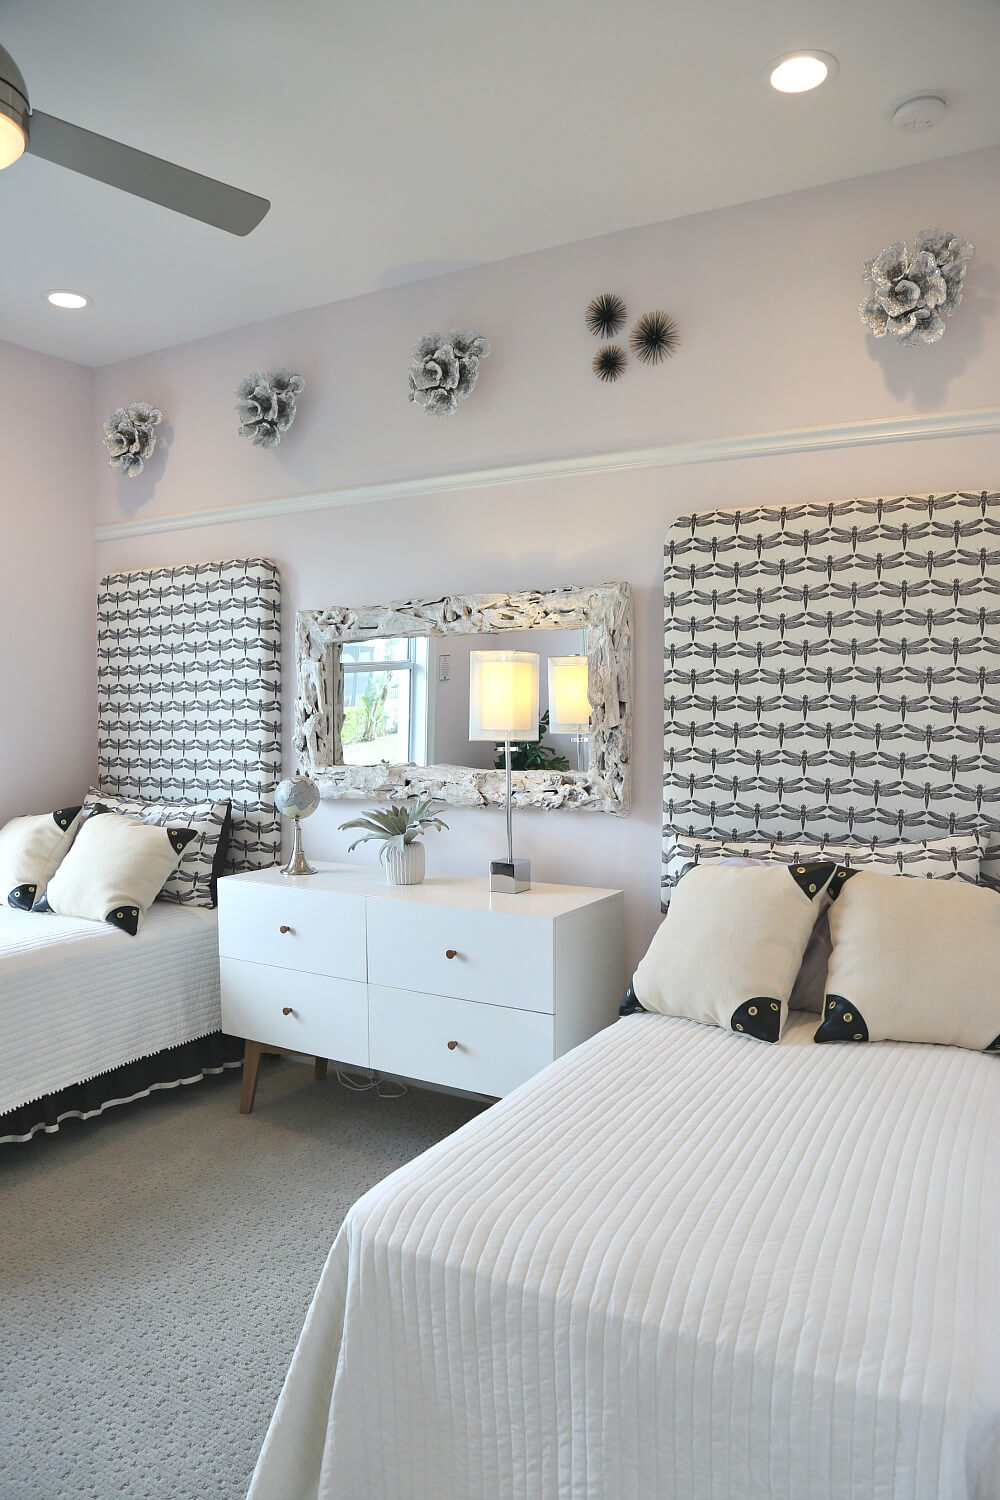 15+ Inspiring Teenage Girl Bedroom Ideas That She Will Love on Rooms For Teenagers  id=79227